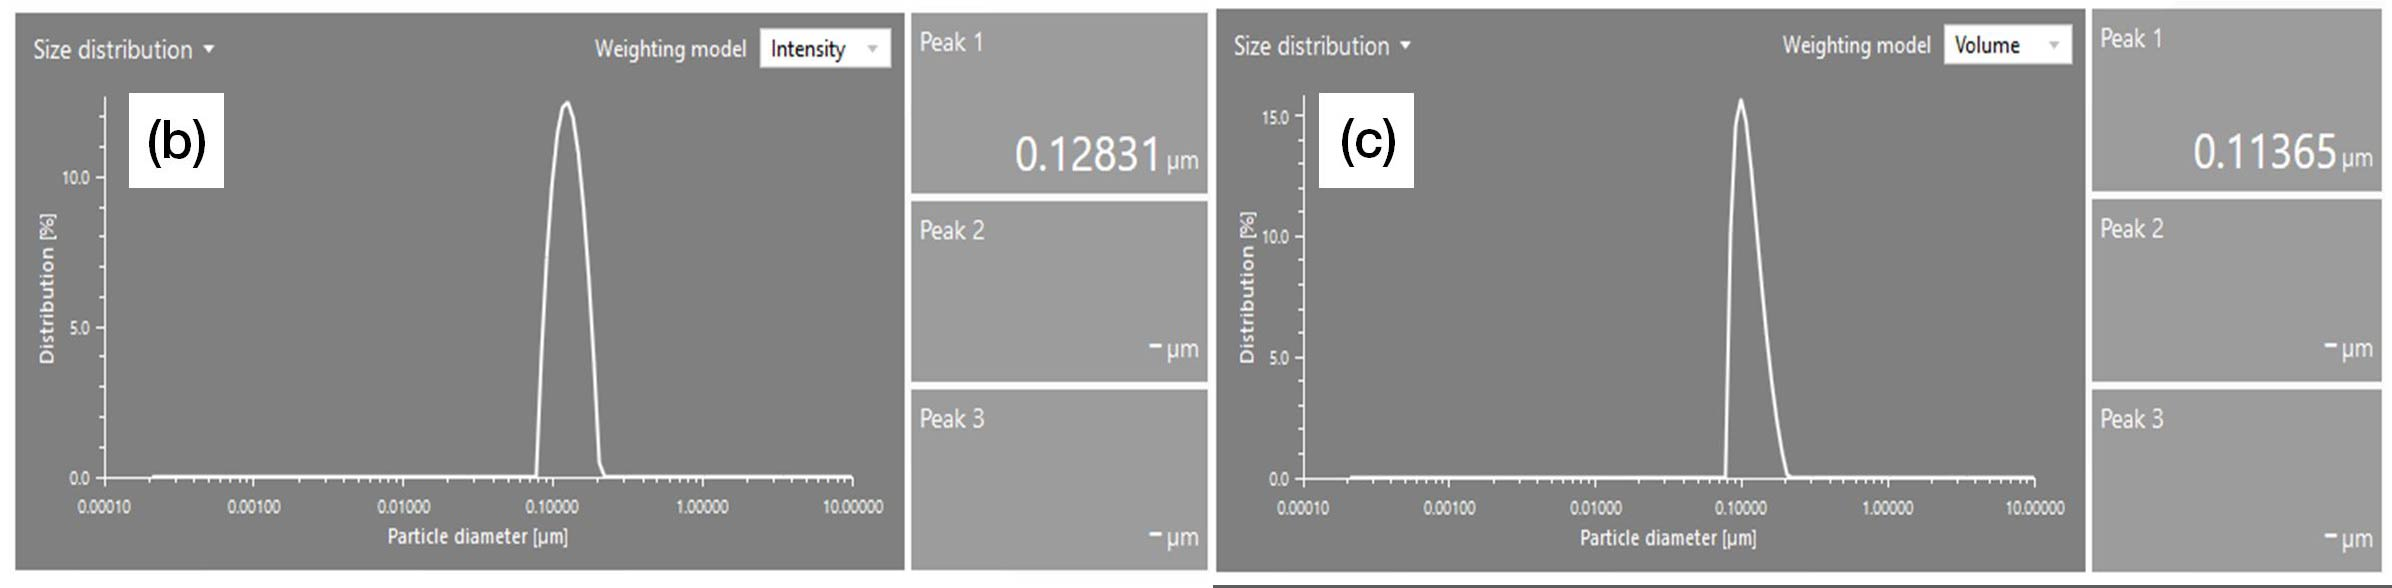 Figure 2: Particle size and size distribution of polystyrene latex measured by DLS: (a) correlation function and hydrodynamic diameter (HDD); (b) and (c) particle size distribution and peak size in the intensity- and volume-based distribution, respectively